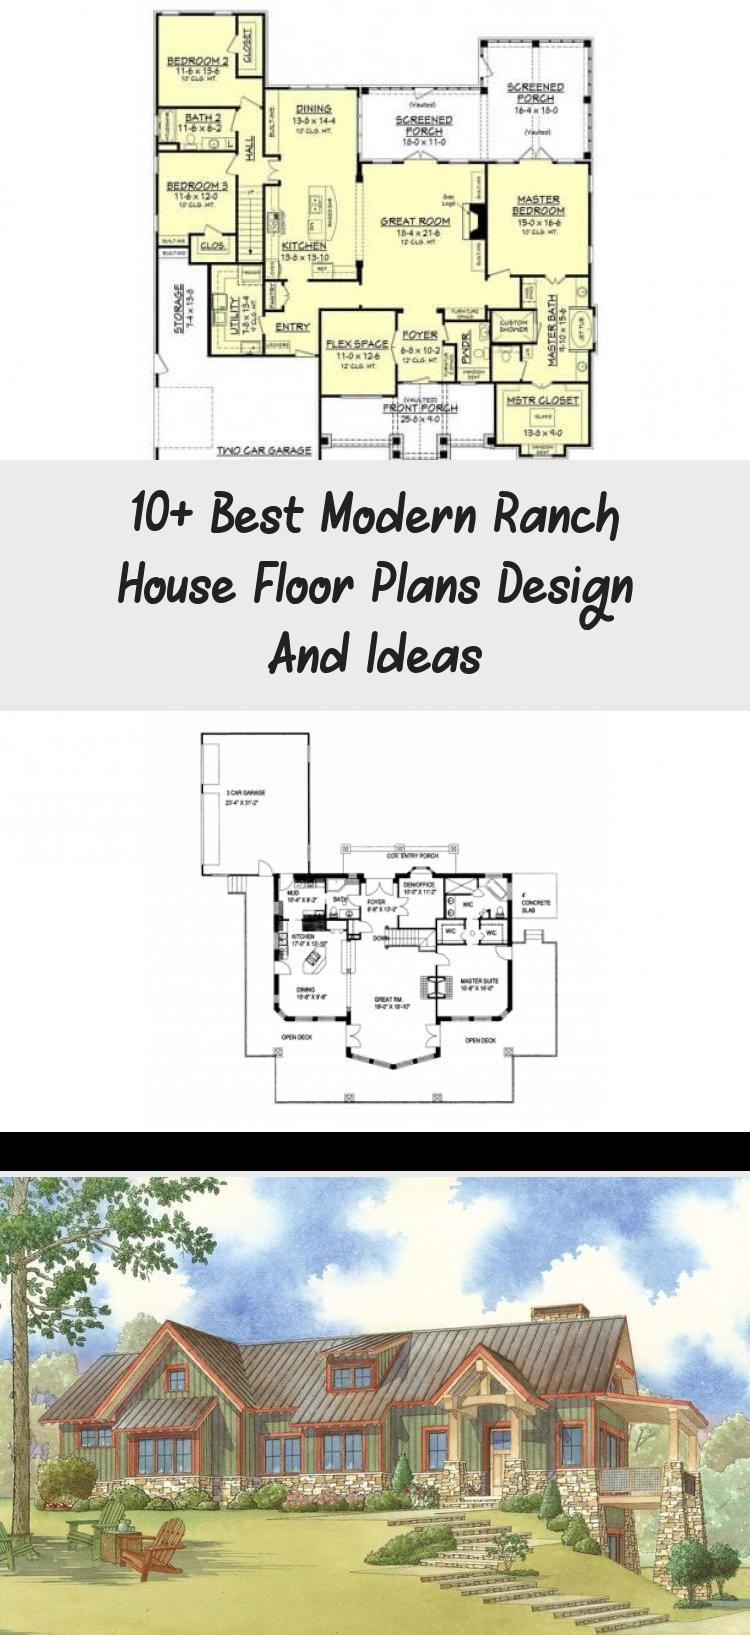 Looking For Ranch House Floor Plans House Plans I Recommend This Site Best Picture And G Ranch House Floor Plans Home Design Floor Plans House Floor Plans